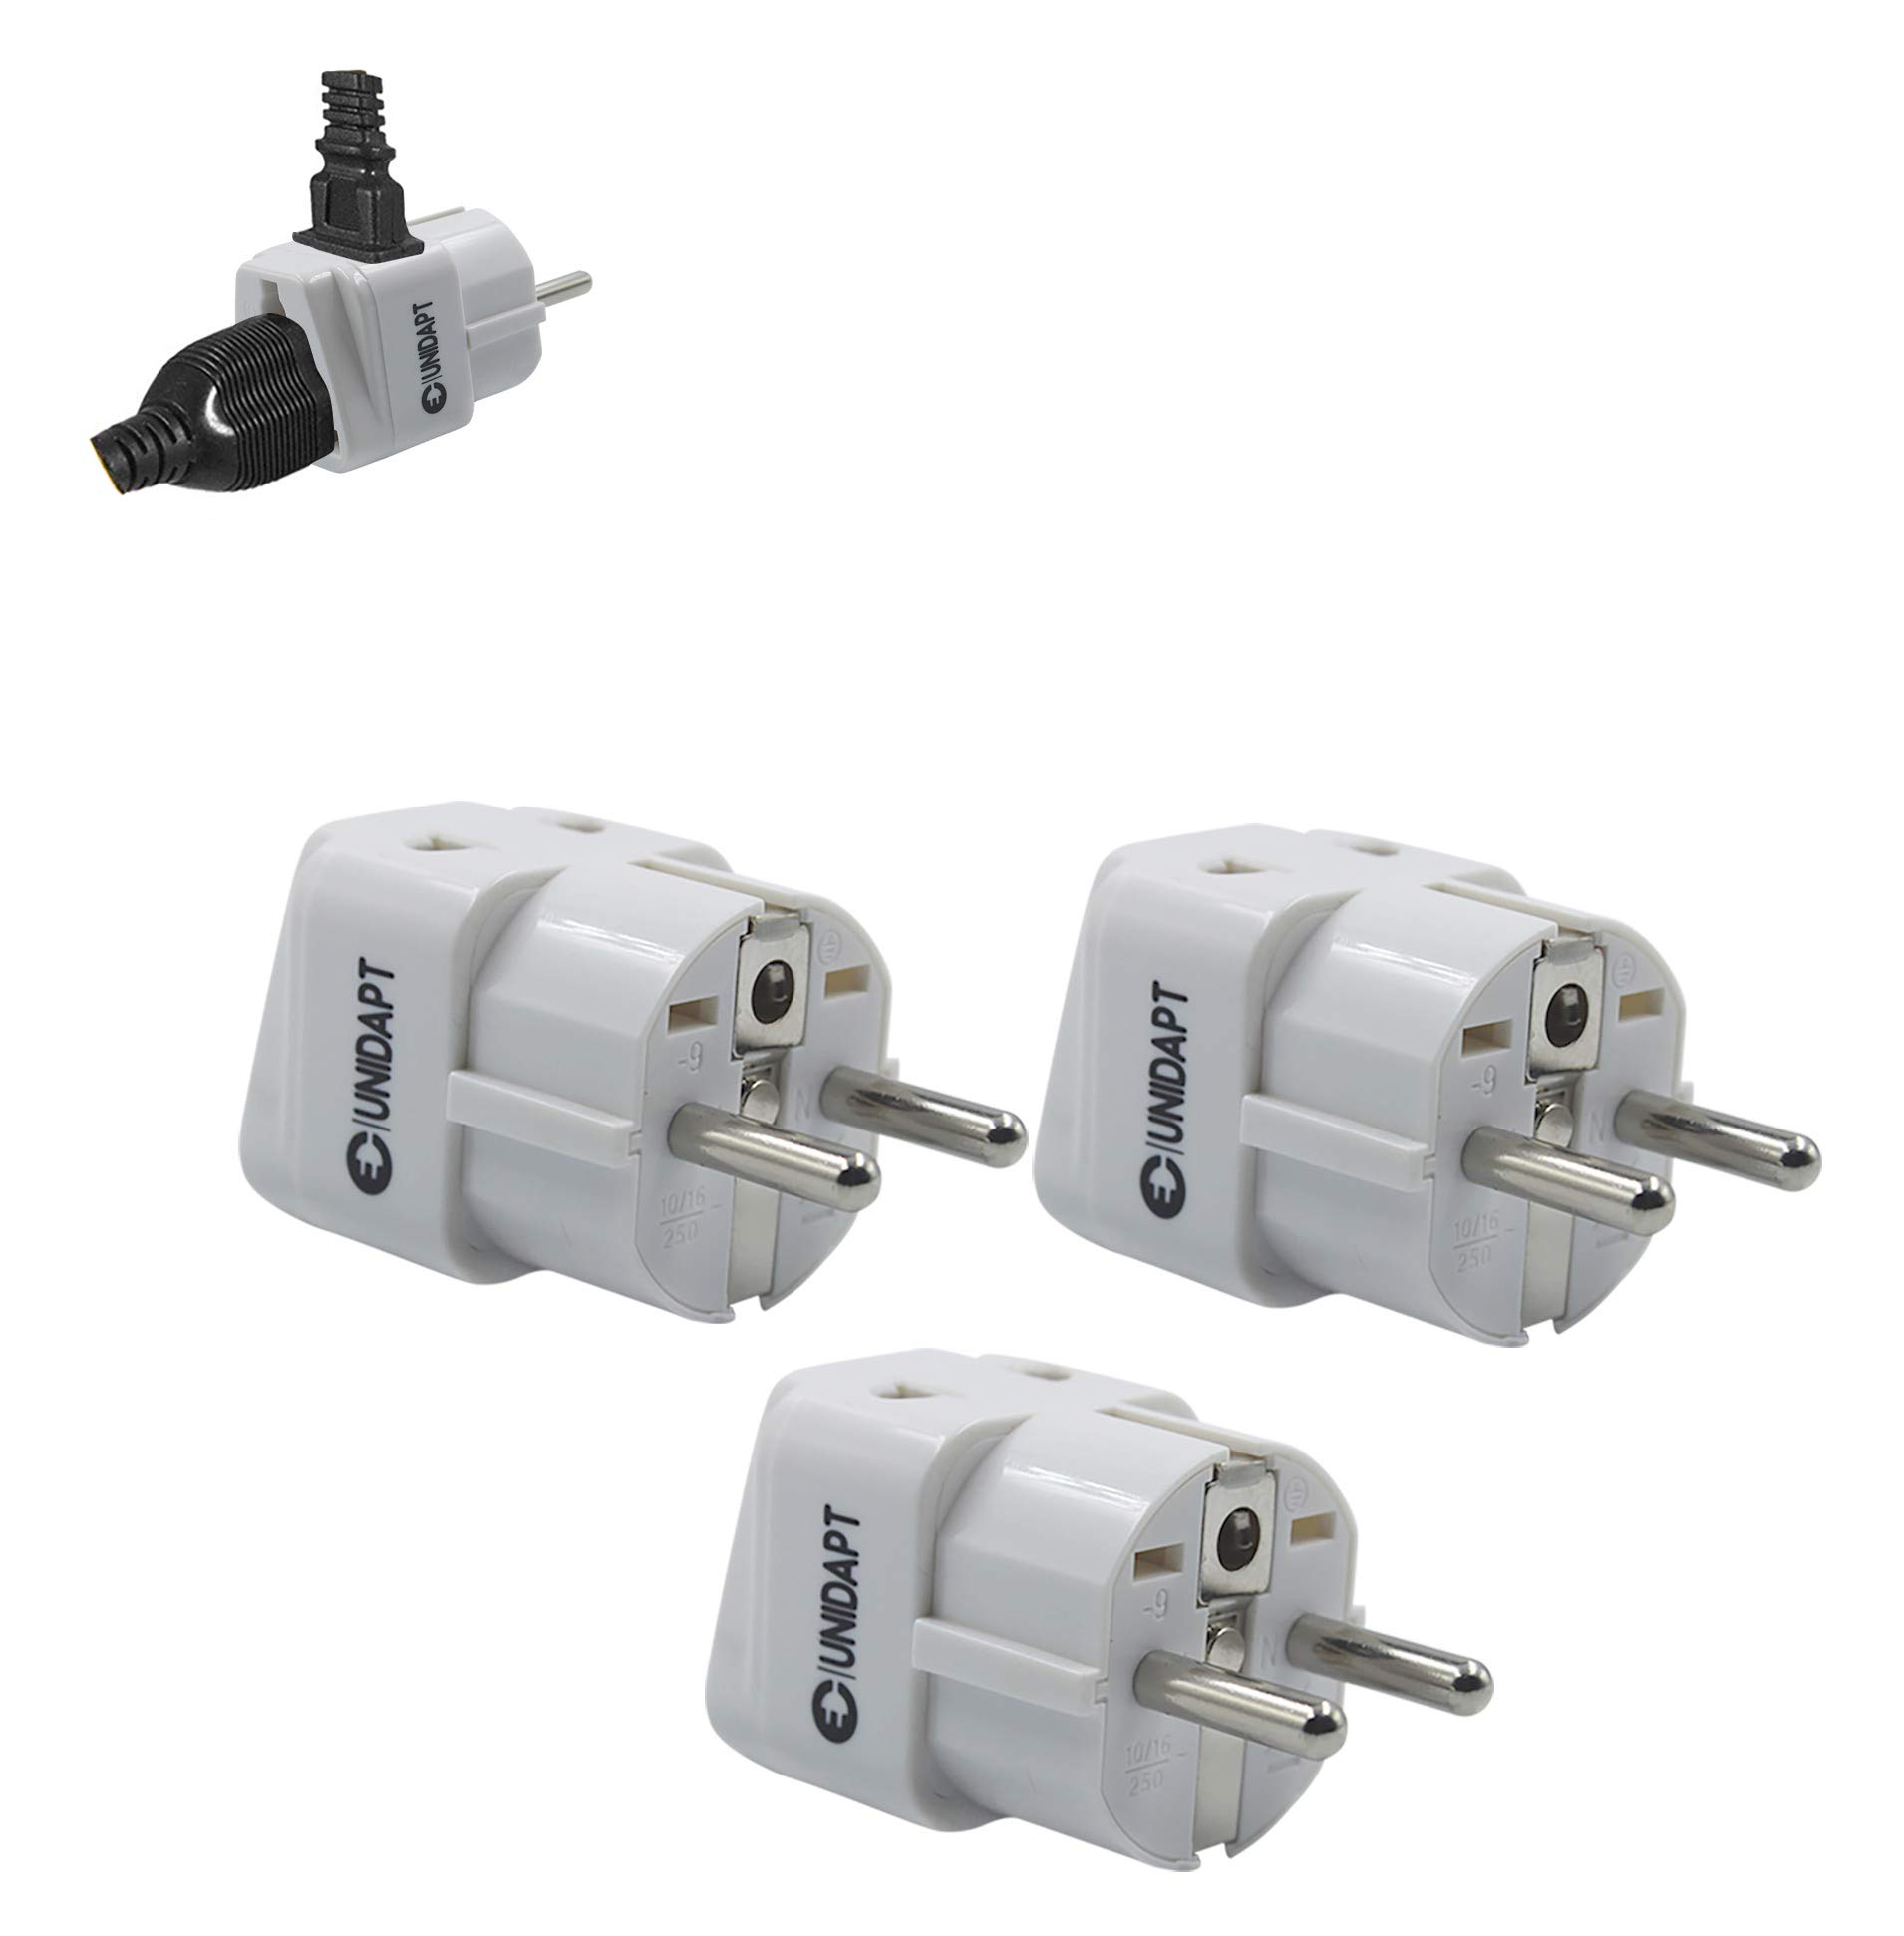 European Plug Adapter USA US to EU Europe - Unidapt Power Adapter Plug Charger Converter Schuko E-F Plug Adaptor (3 piece)